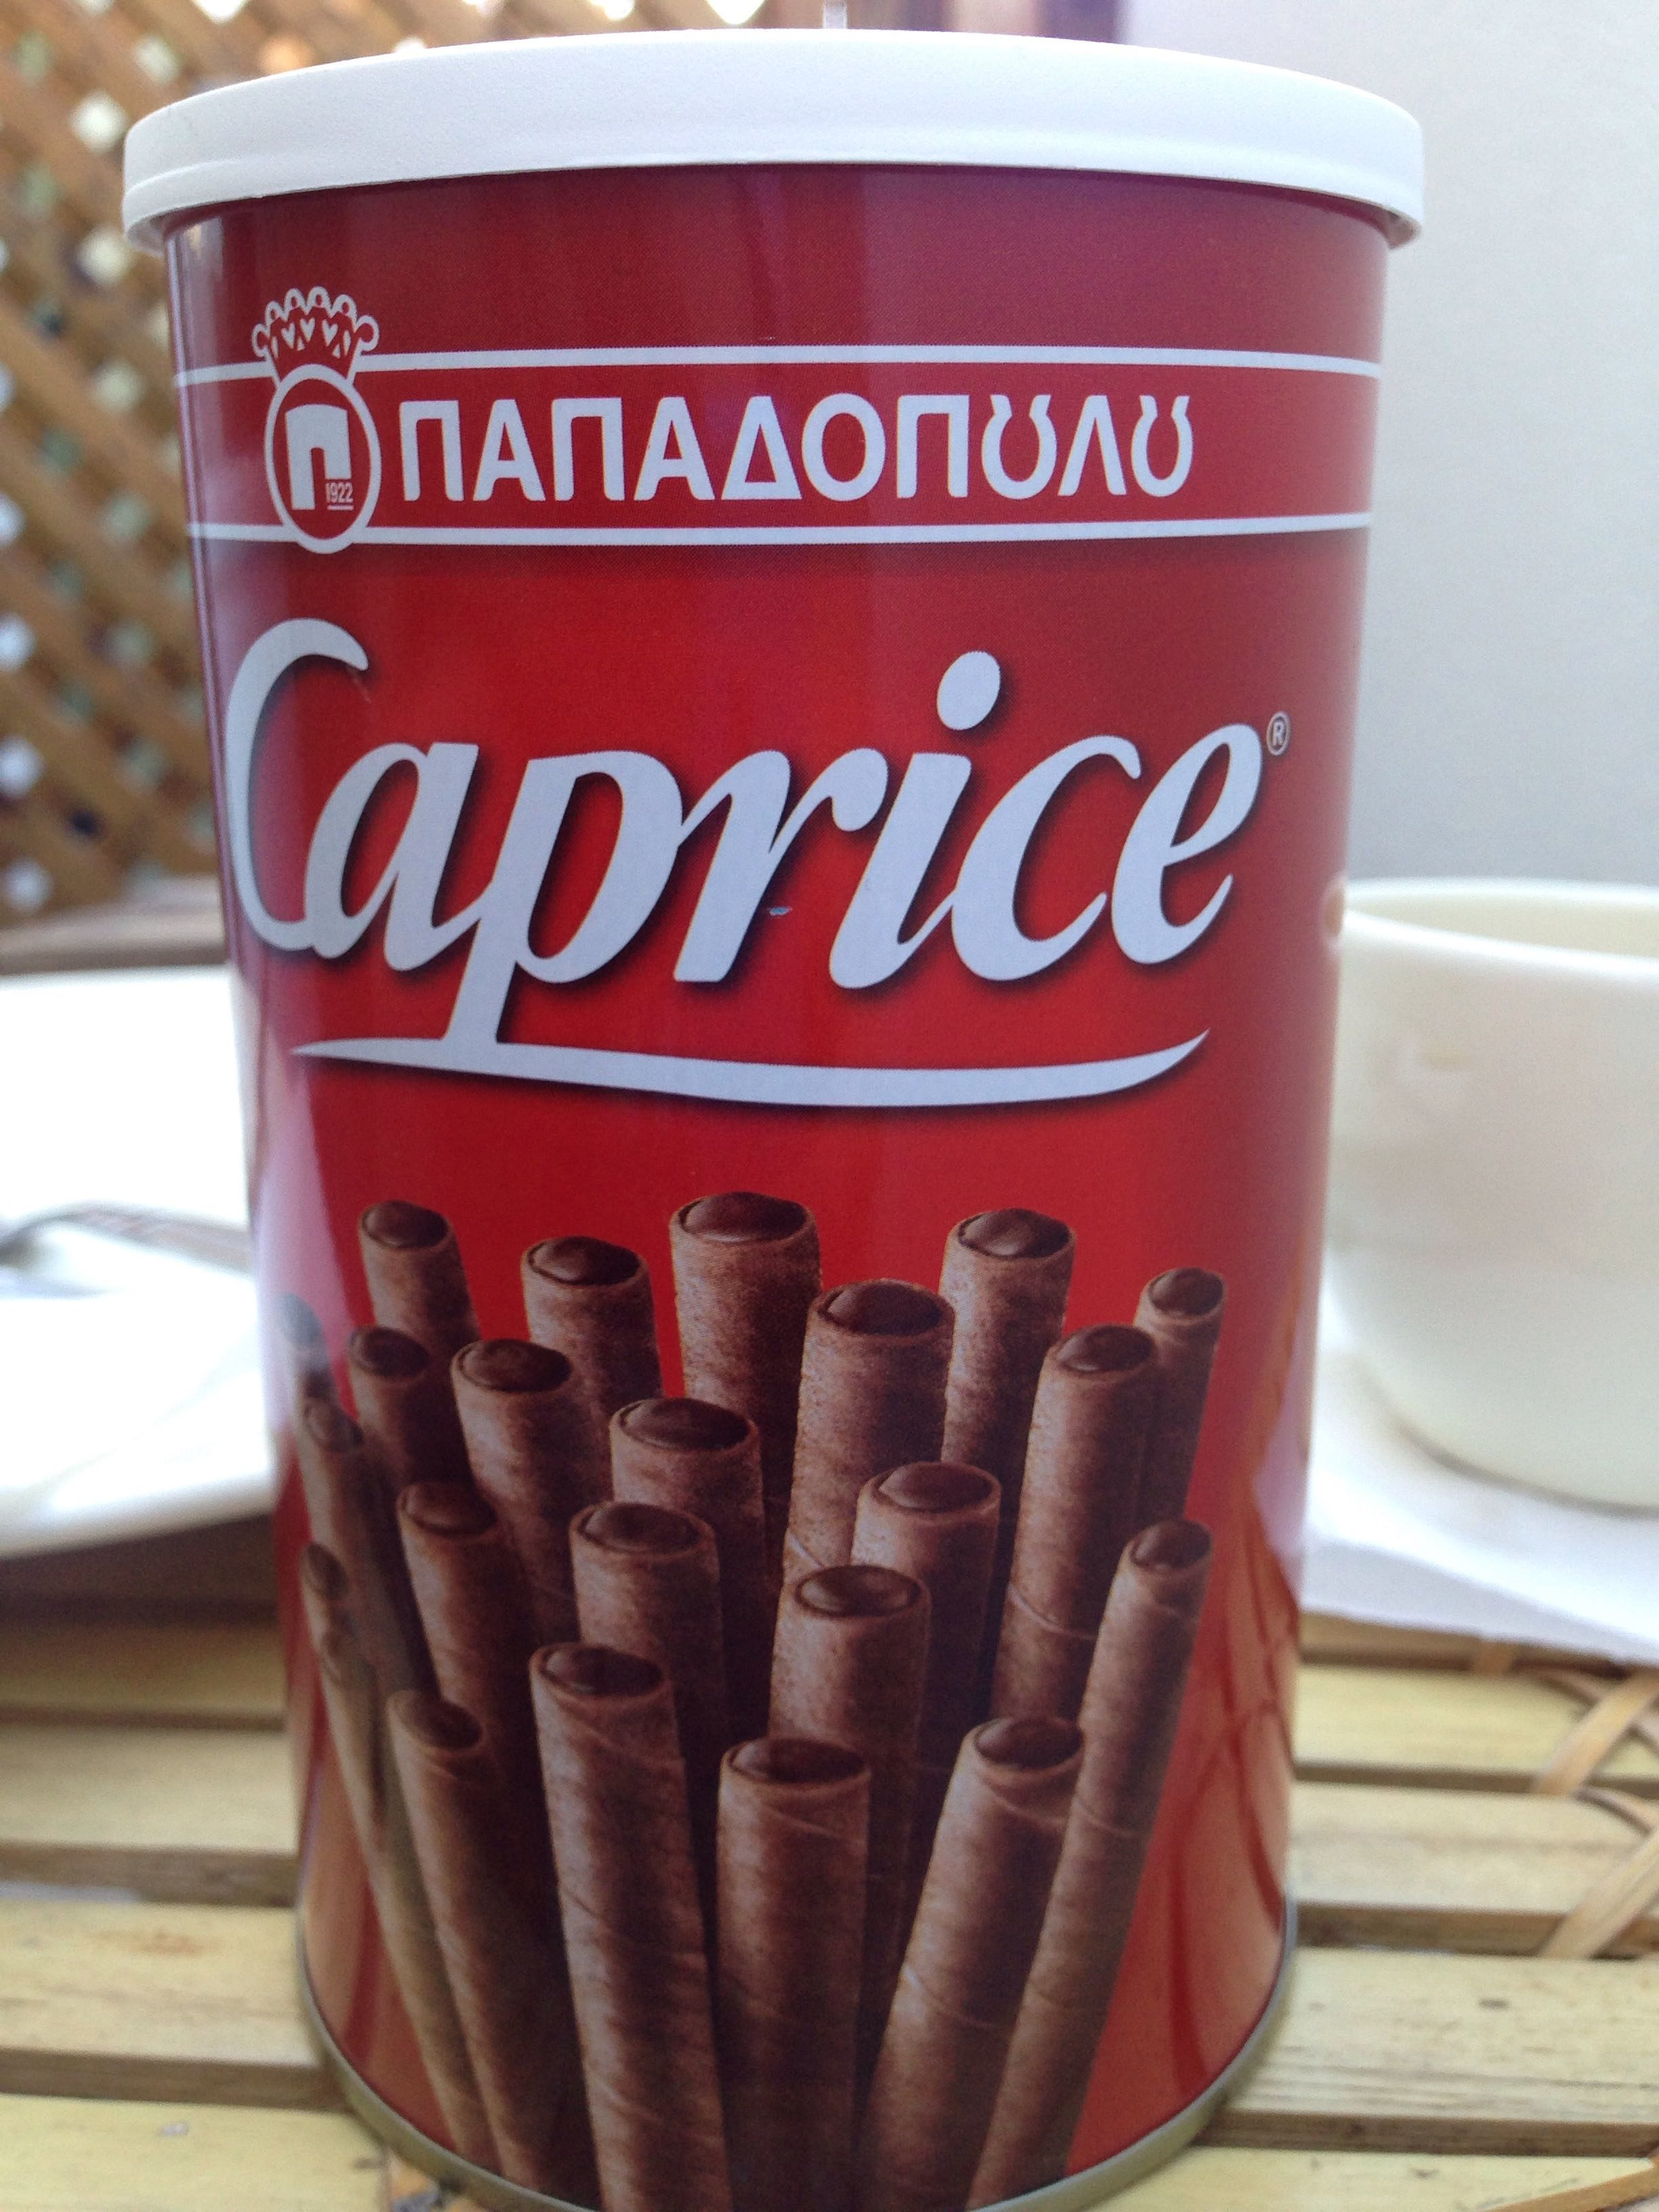 Caprice Delicious Wafer Rolls with Hazelnut and Cocoa Cream - Produit - fr